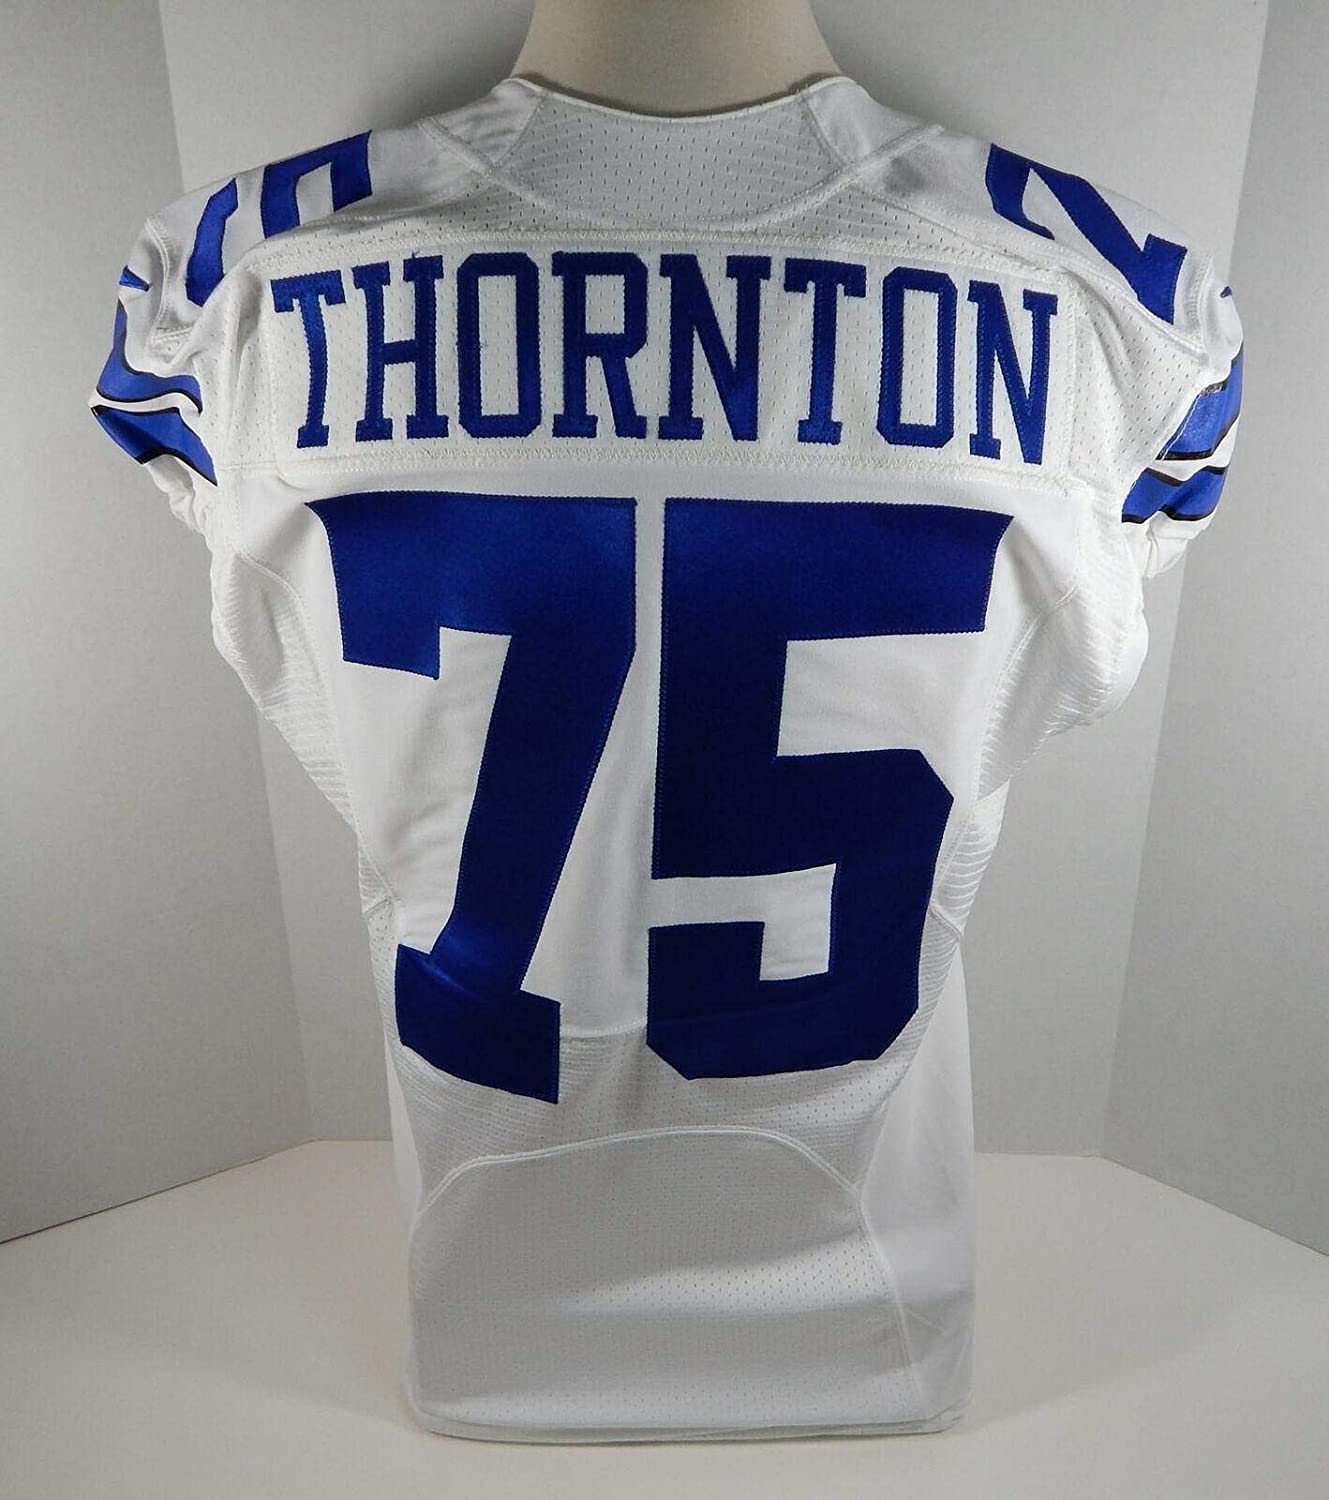 2015 Cowboys Cedric Thornton #75 Game Issued White Jersey DAL00123 - Unsigned NFL Game Used Jerseys